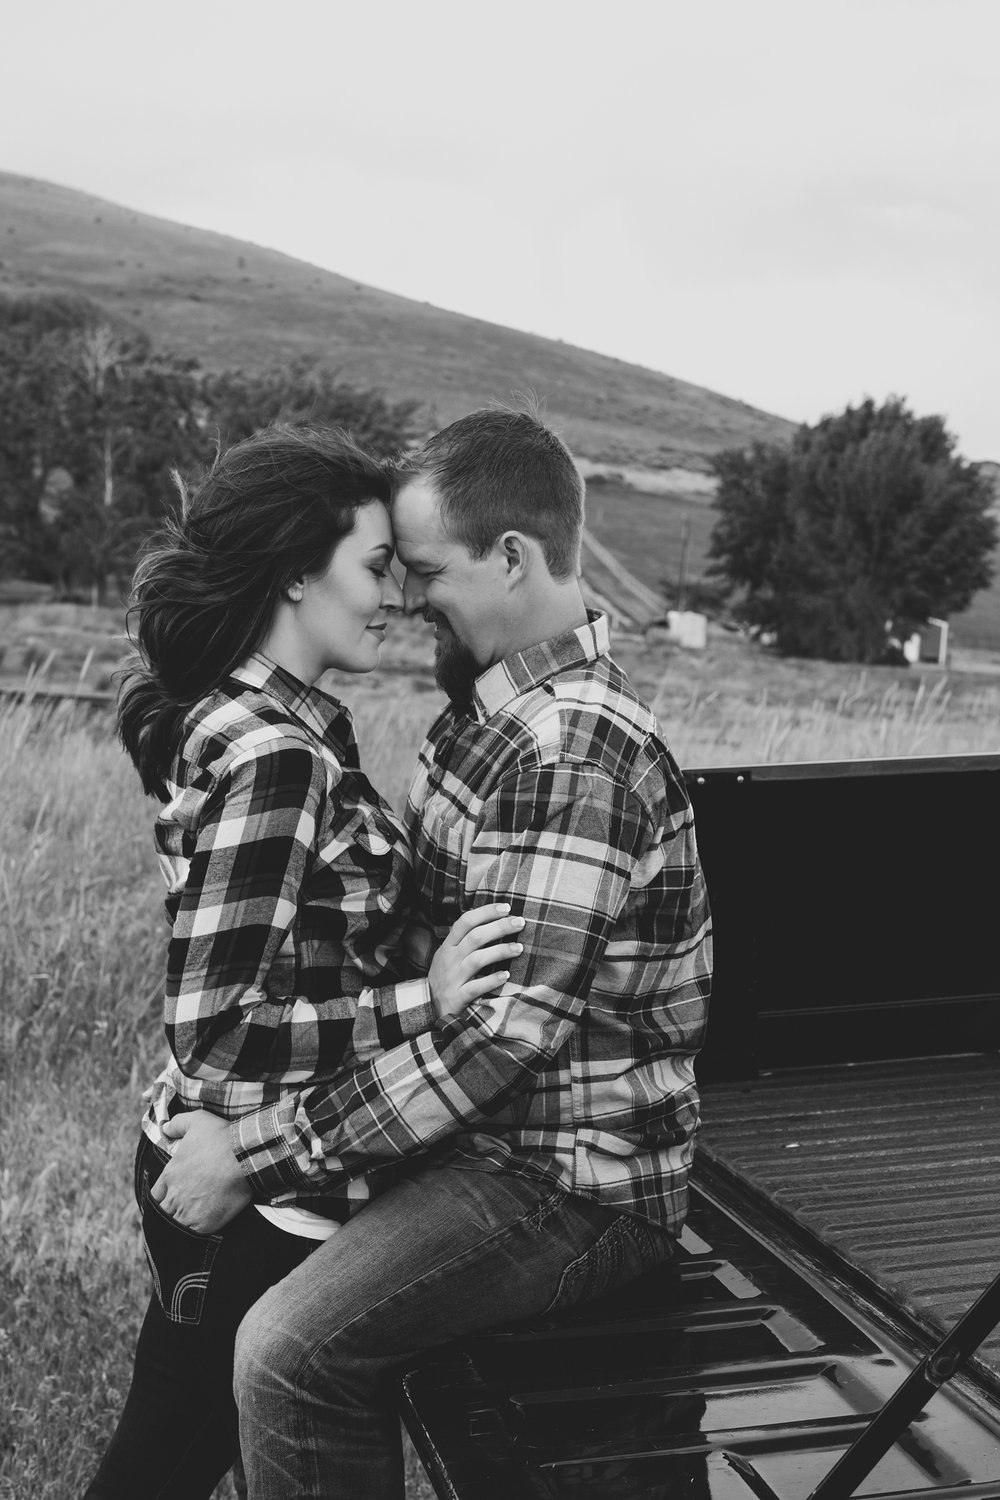 Tri cities engagement photographer_tri cities_engagement_tri cities wedding photographer_engagement photos_Kennewick_richland_wedding wednesday_Jordan Edens Photography_11